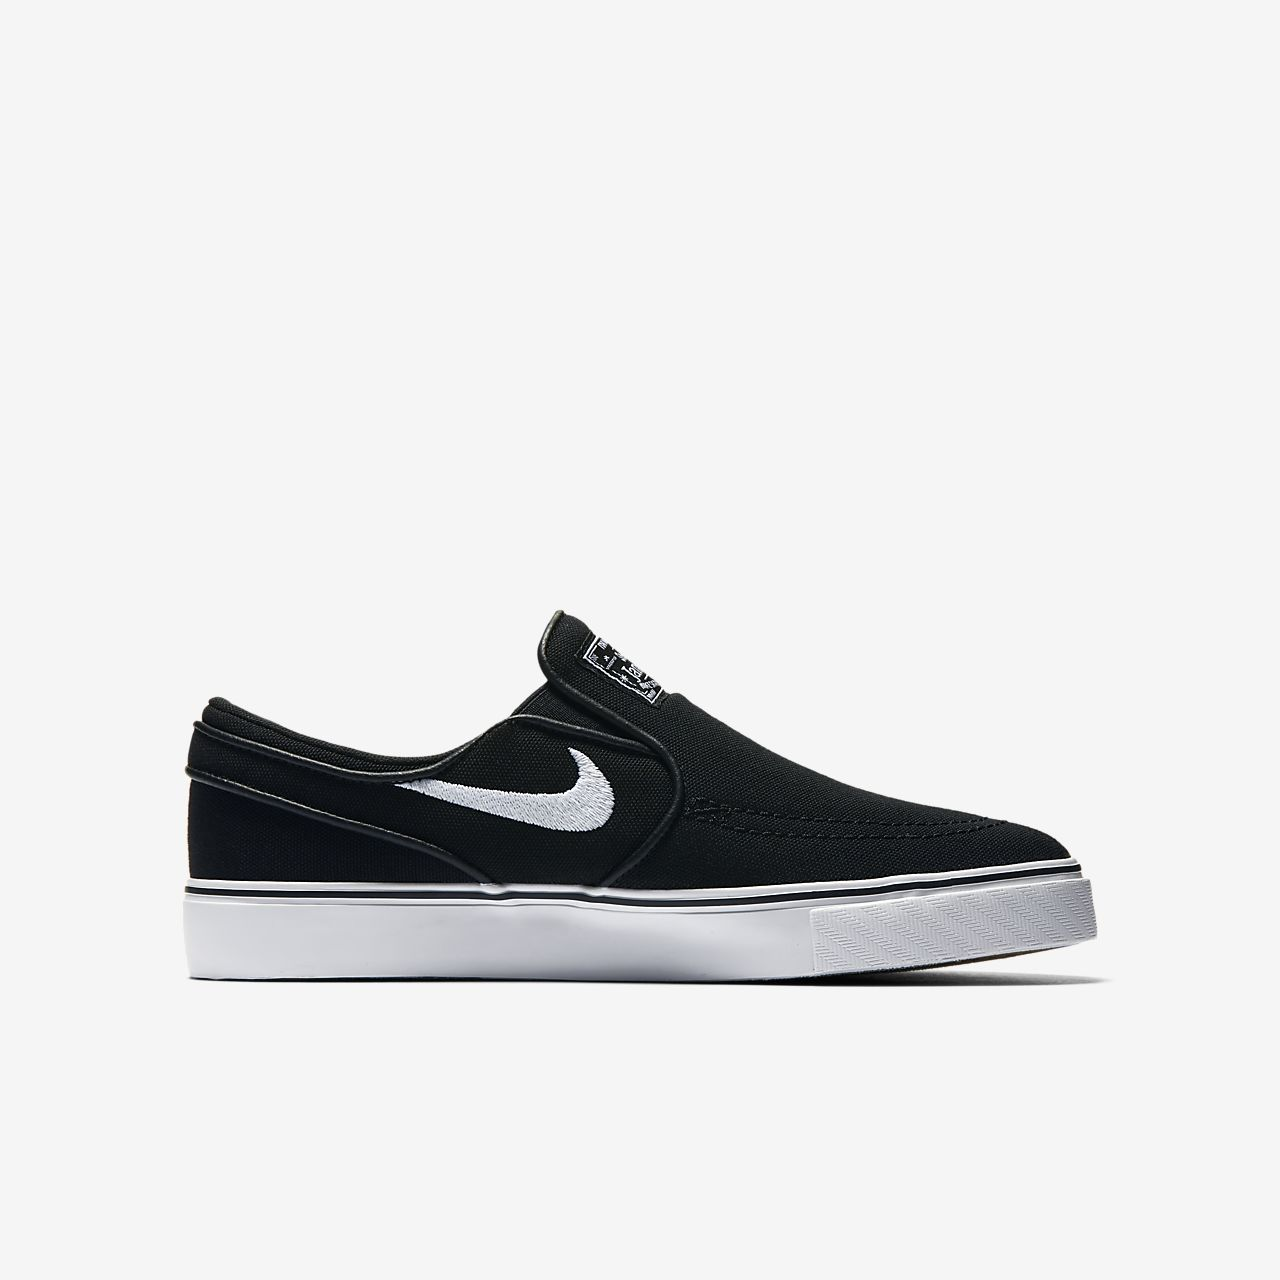 Nike SB Stefan Janoski Canvas Slip-on Big Kids  Skateboarding Shoe ... 957370a5d